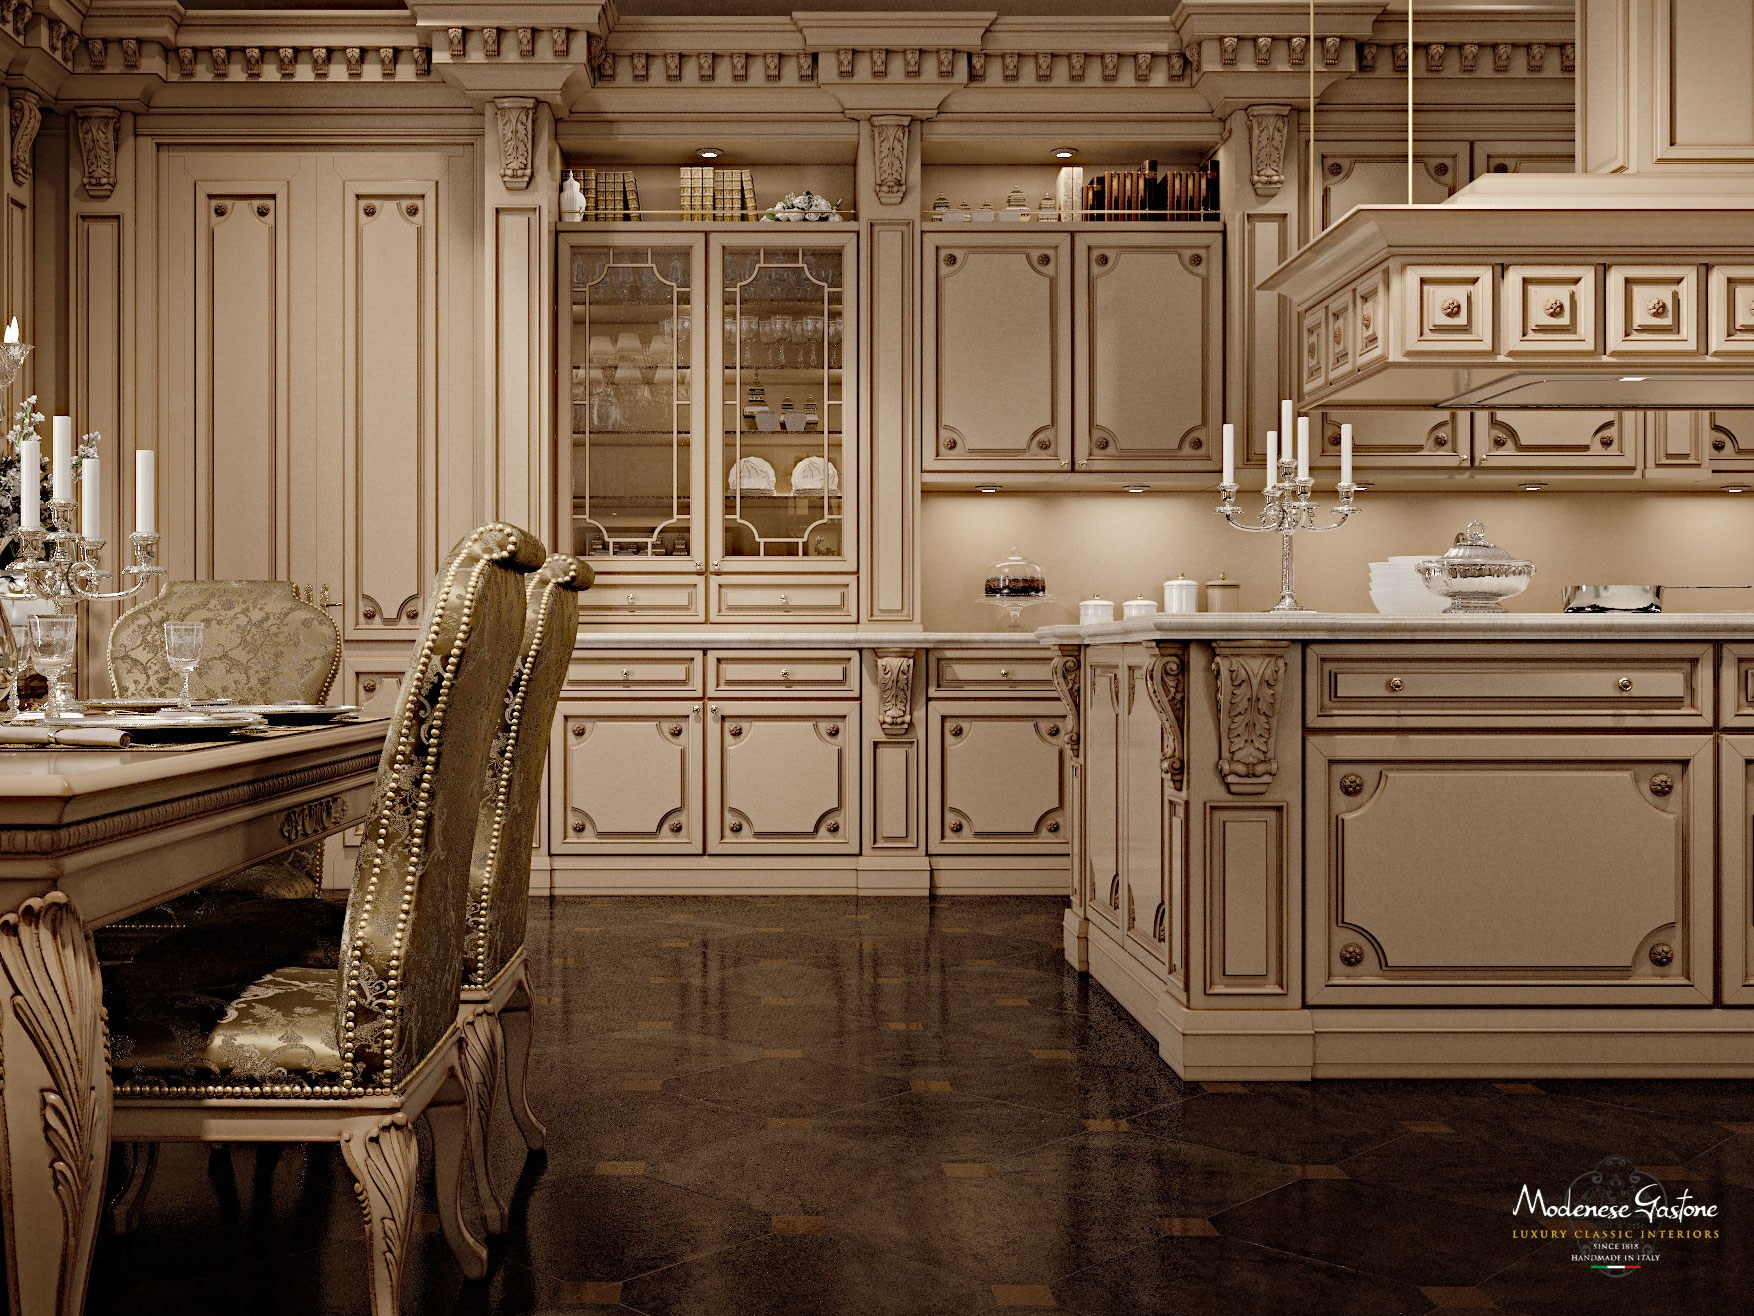 Cucine stile barocco | Archiproducts